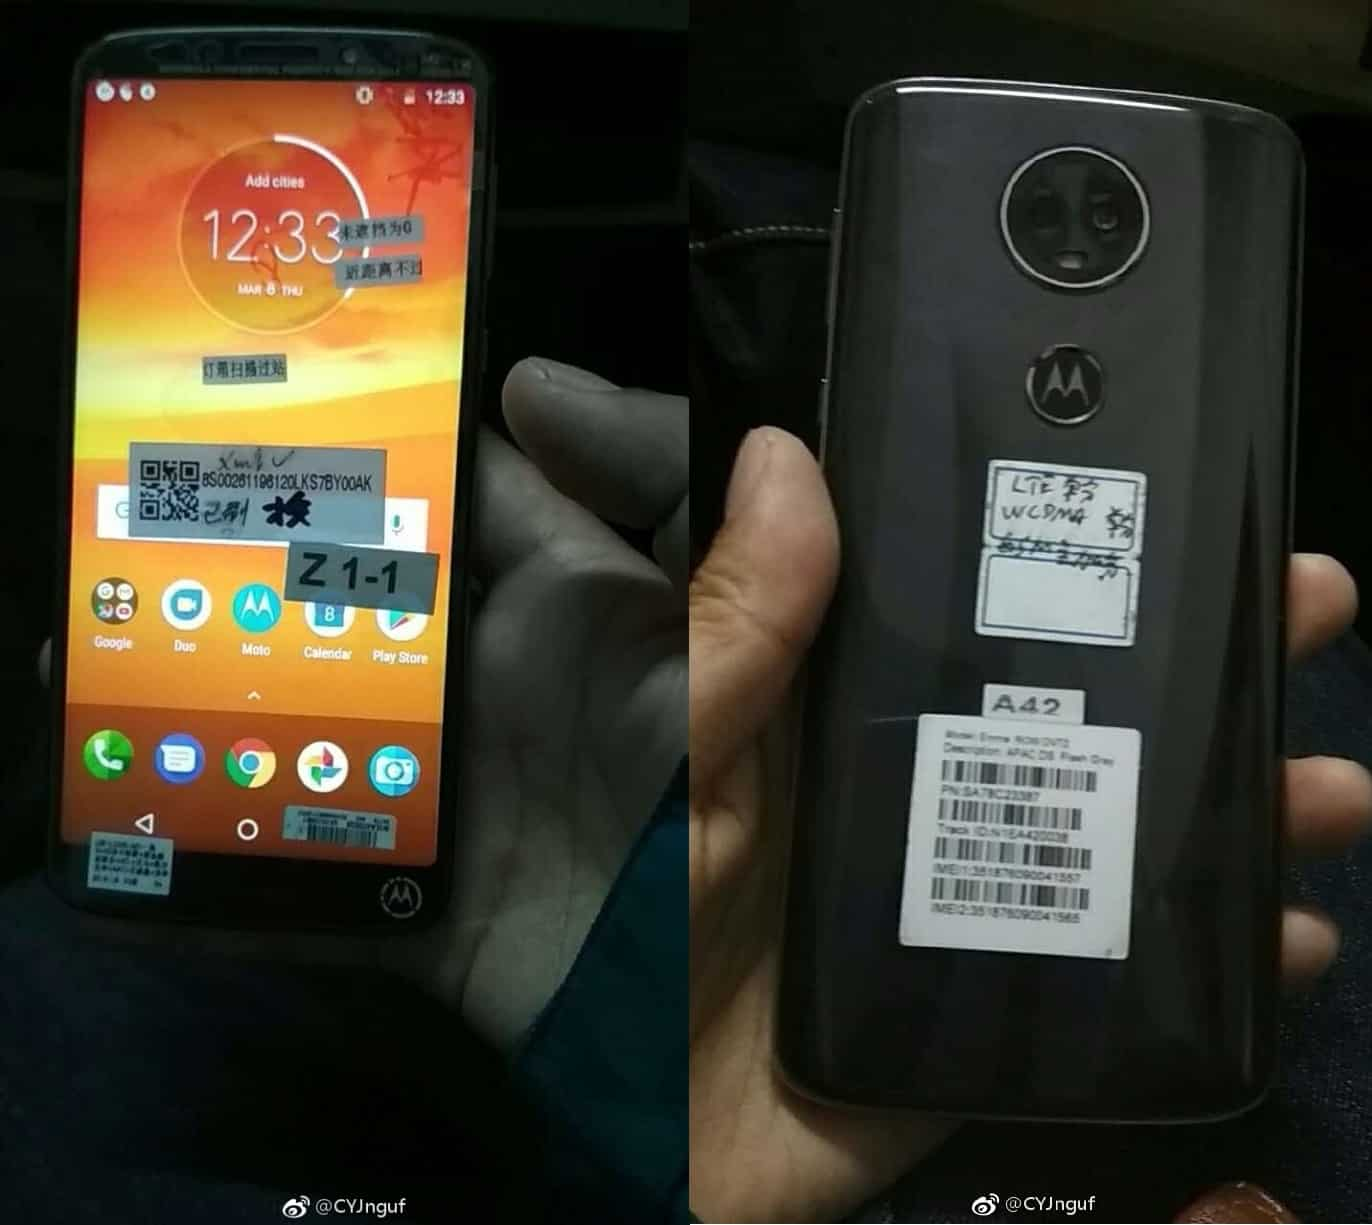 Best Car Buying Apps >> Moto E5 Plus Android Phone Leaks In New Hands-On Photos | Androidheadlines.com